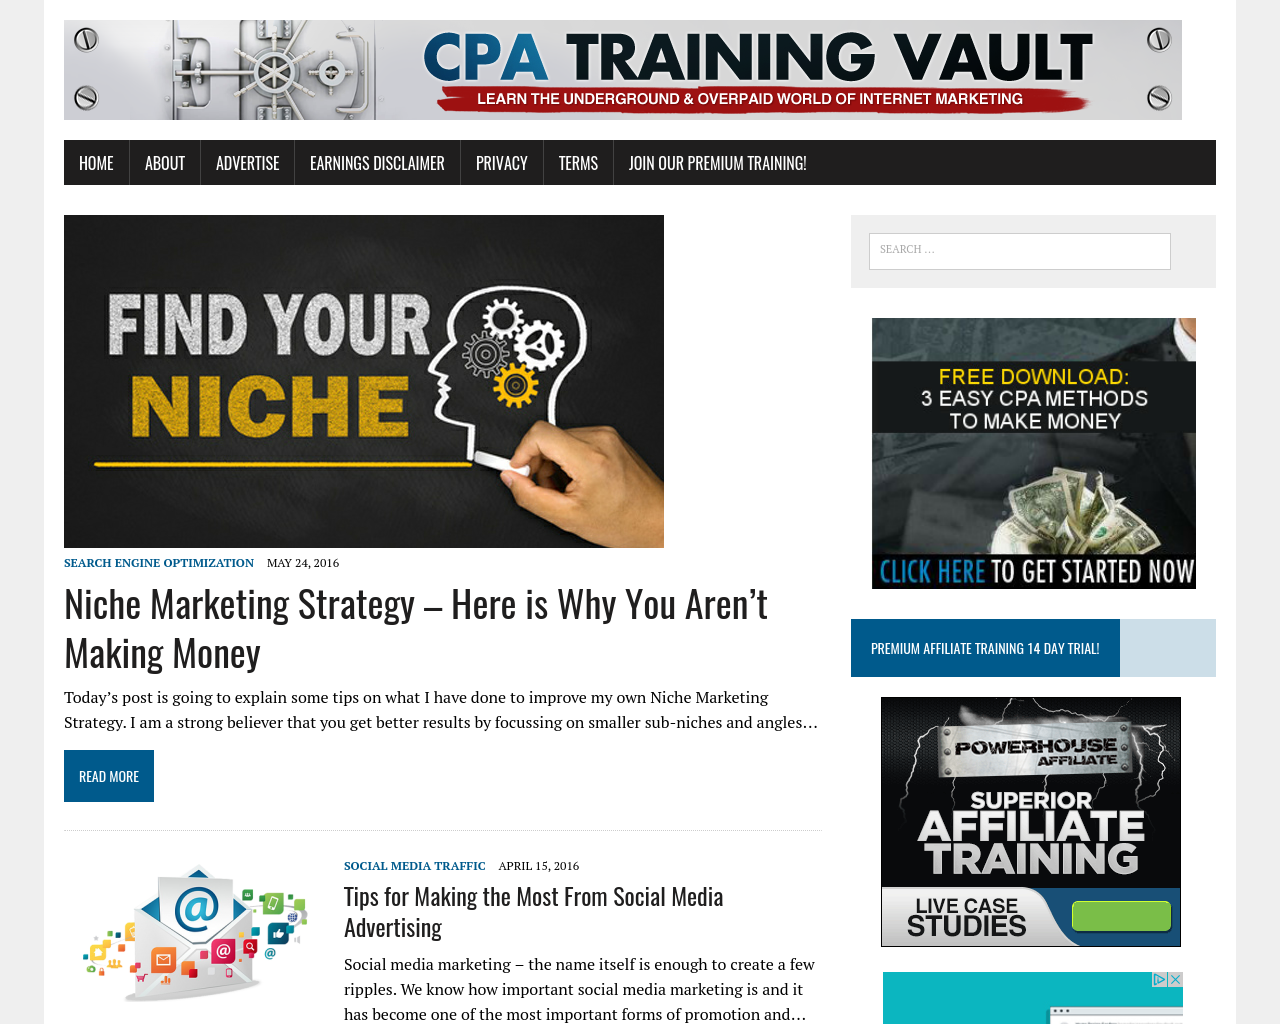 CPA-Training-Vault-Advertising-Reviews-Pricing